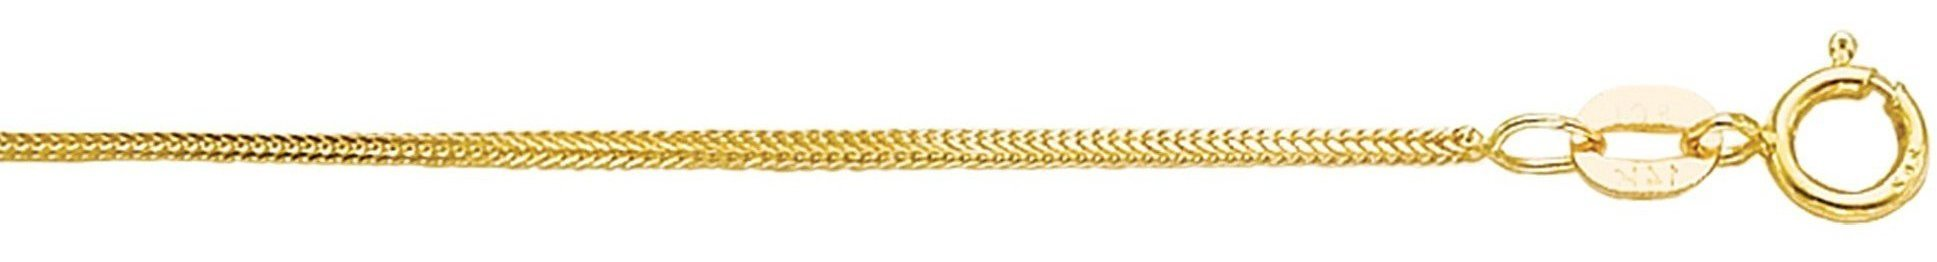 "16"" 14K Yellow Gold 0.9mm (0.04"") Polished Diamond Cut Foxtail Chain w/ Spring Ring Clasp"